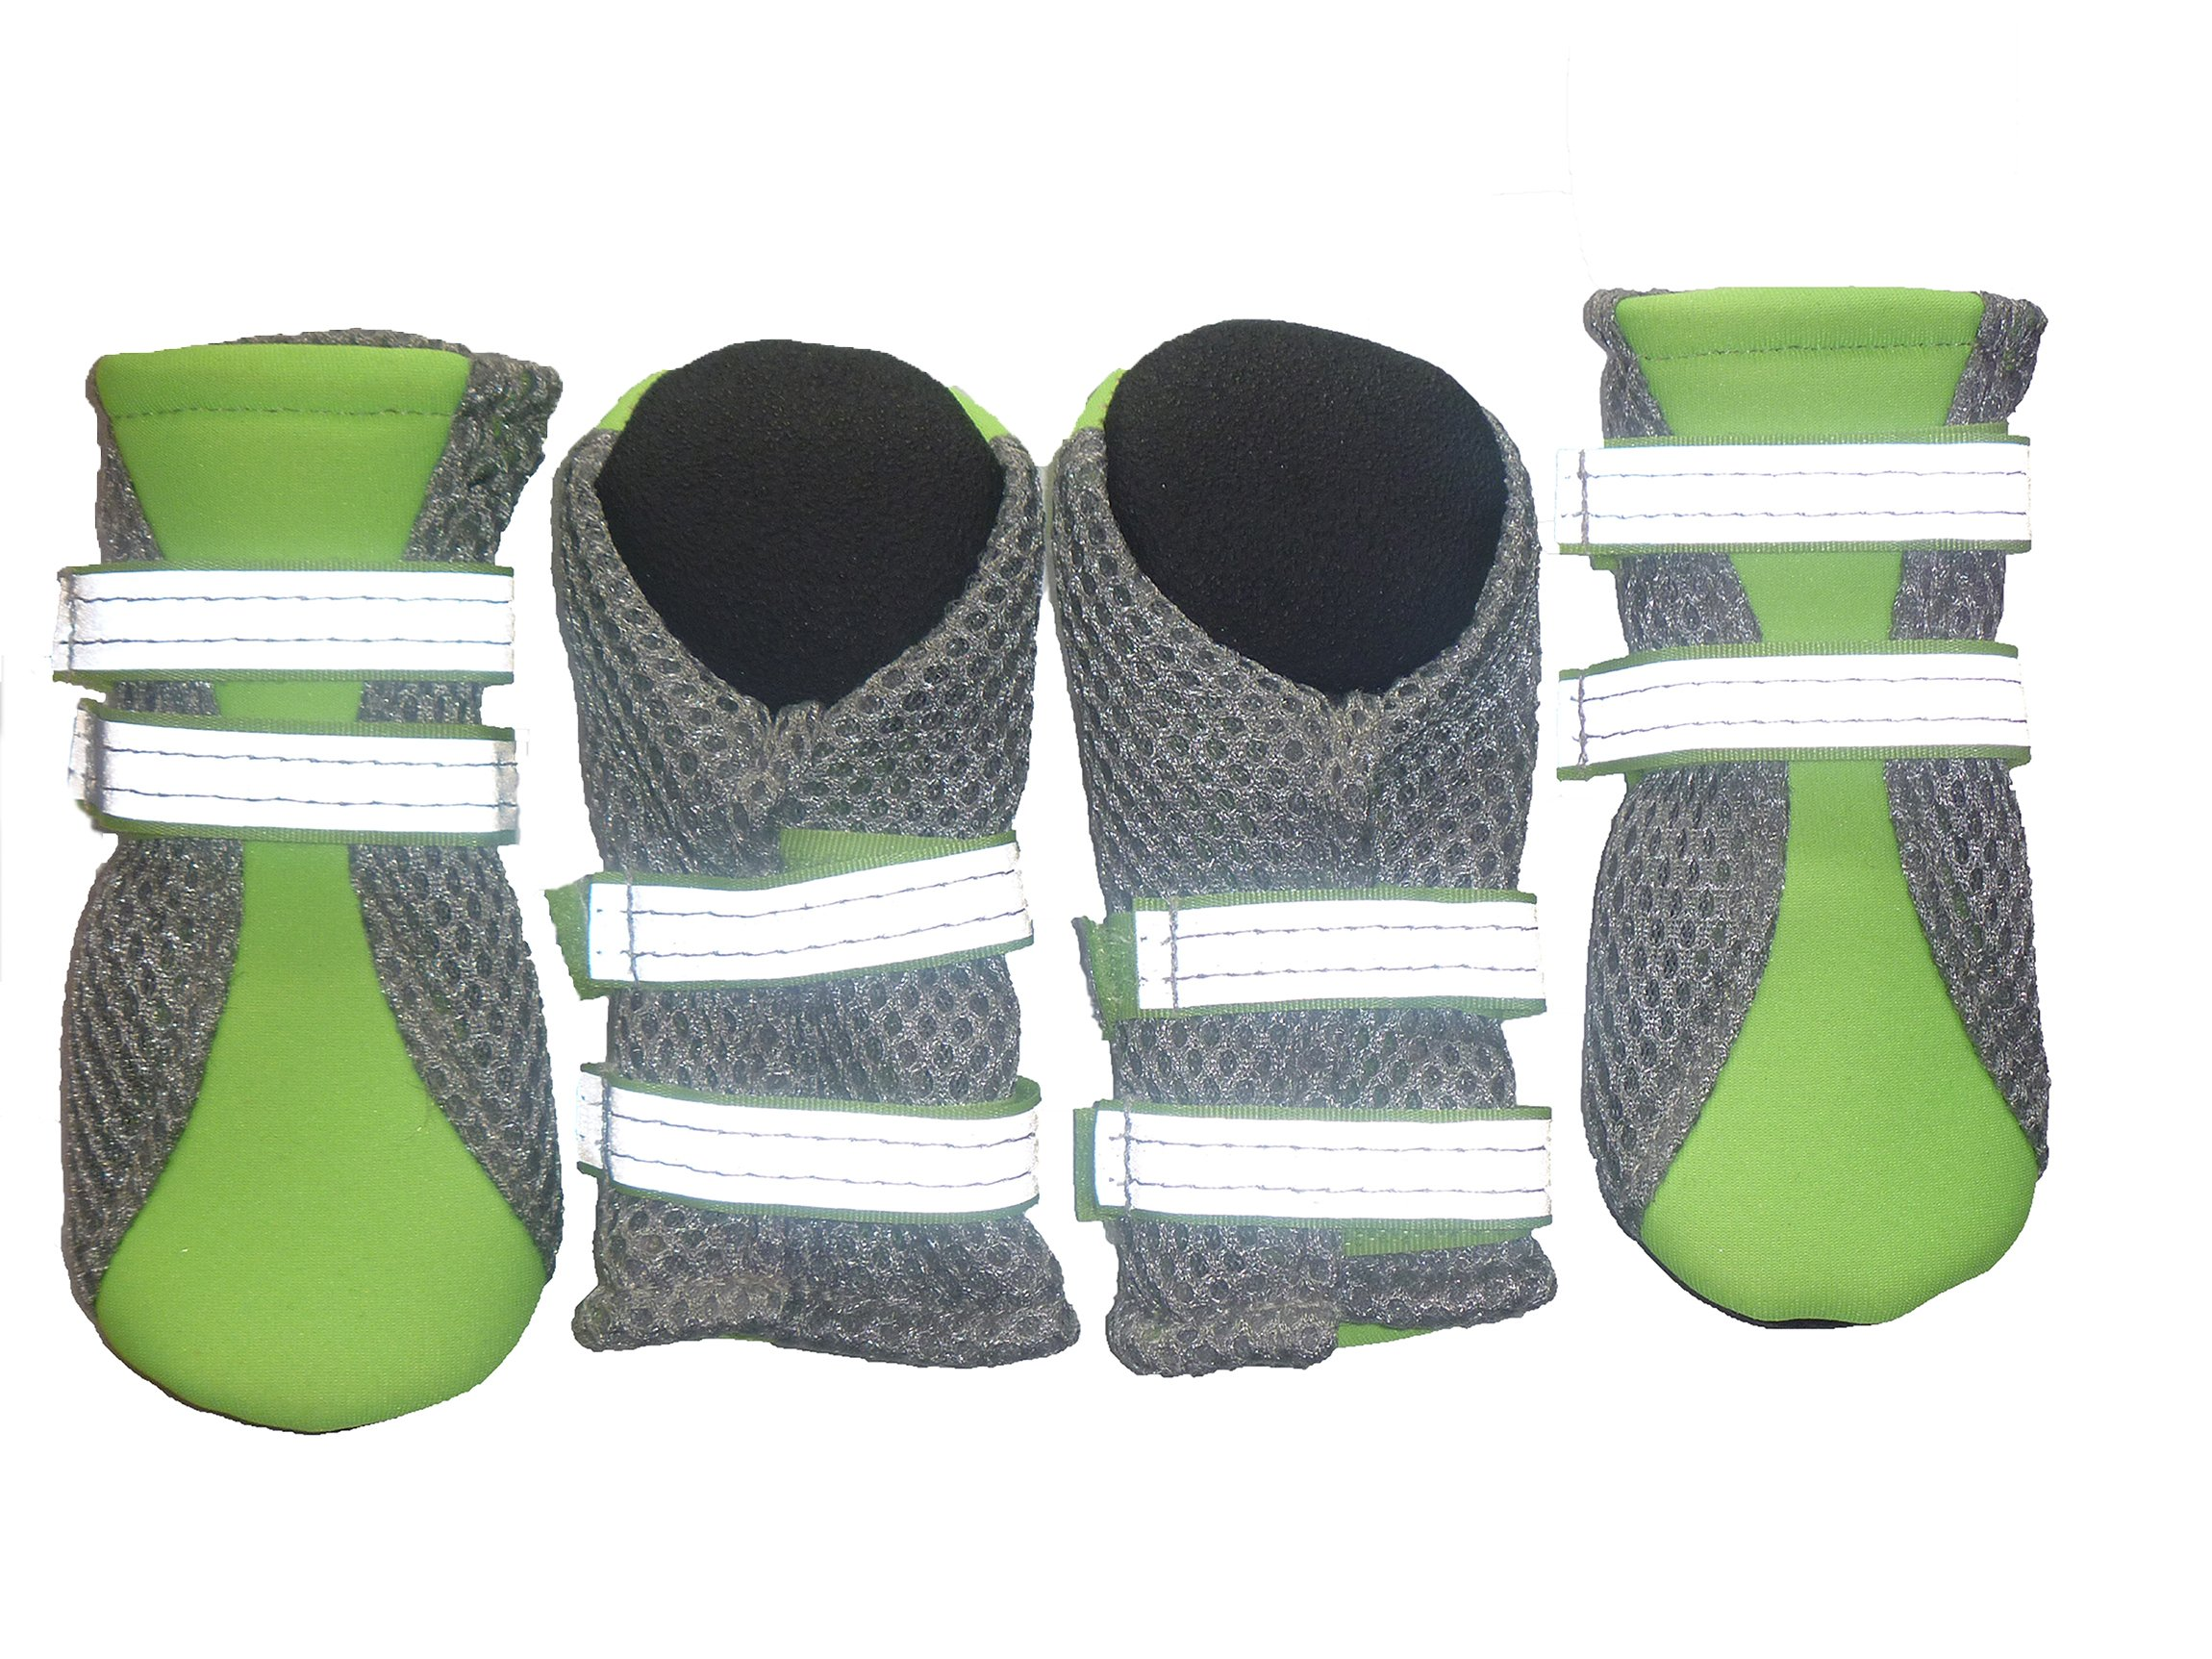 LONSUNEER Puppy Daily Soft Sole Nonslip Mesh Boots, with 2 Long and Safe Reflective Straps, Breathable and Cool, Inner Width 1.6 Inch, Set of 4, Bright Green